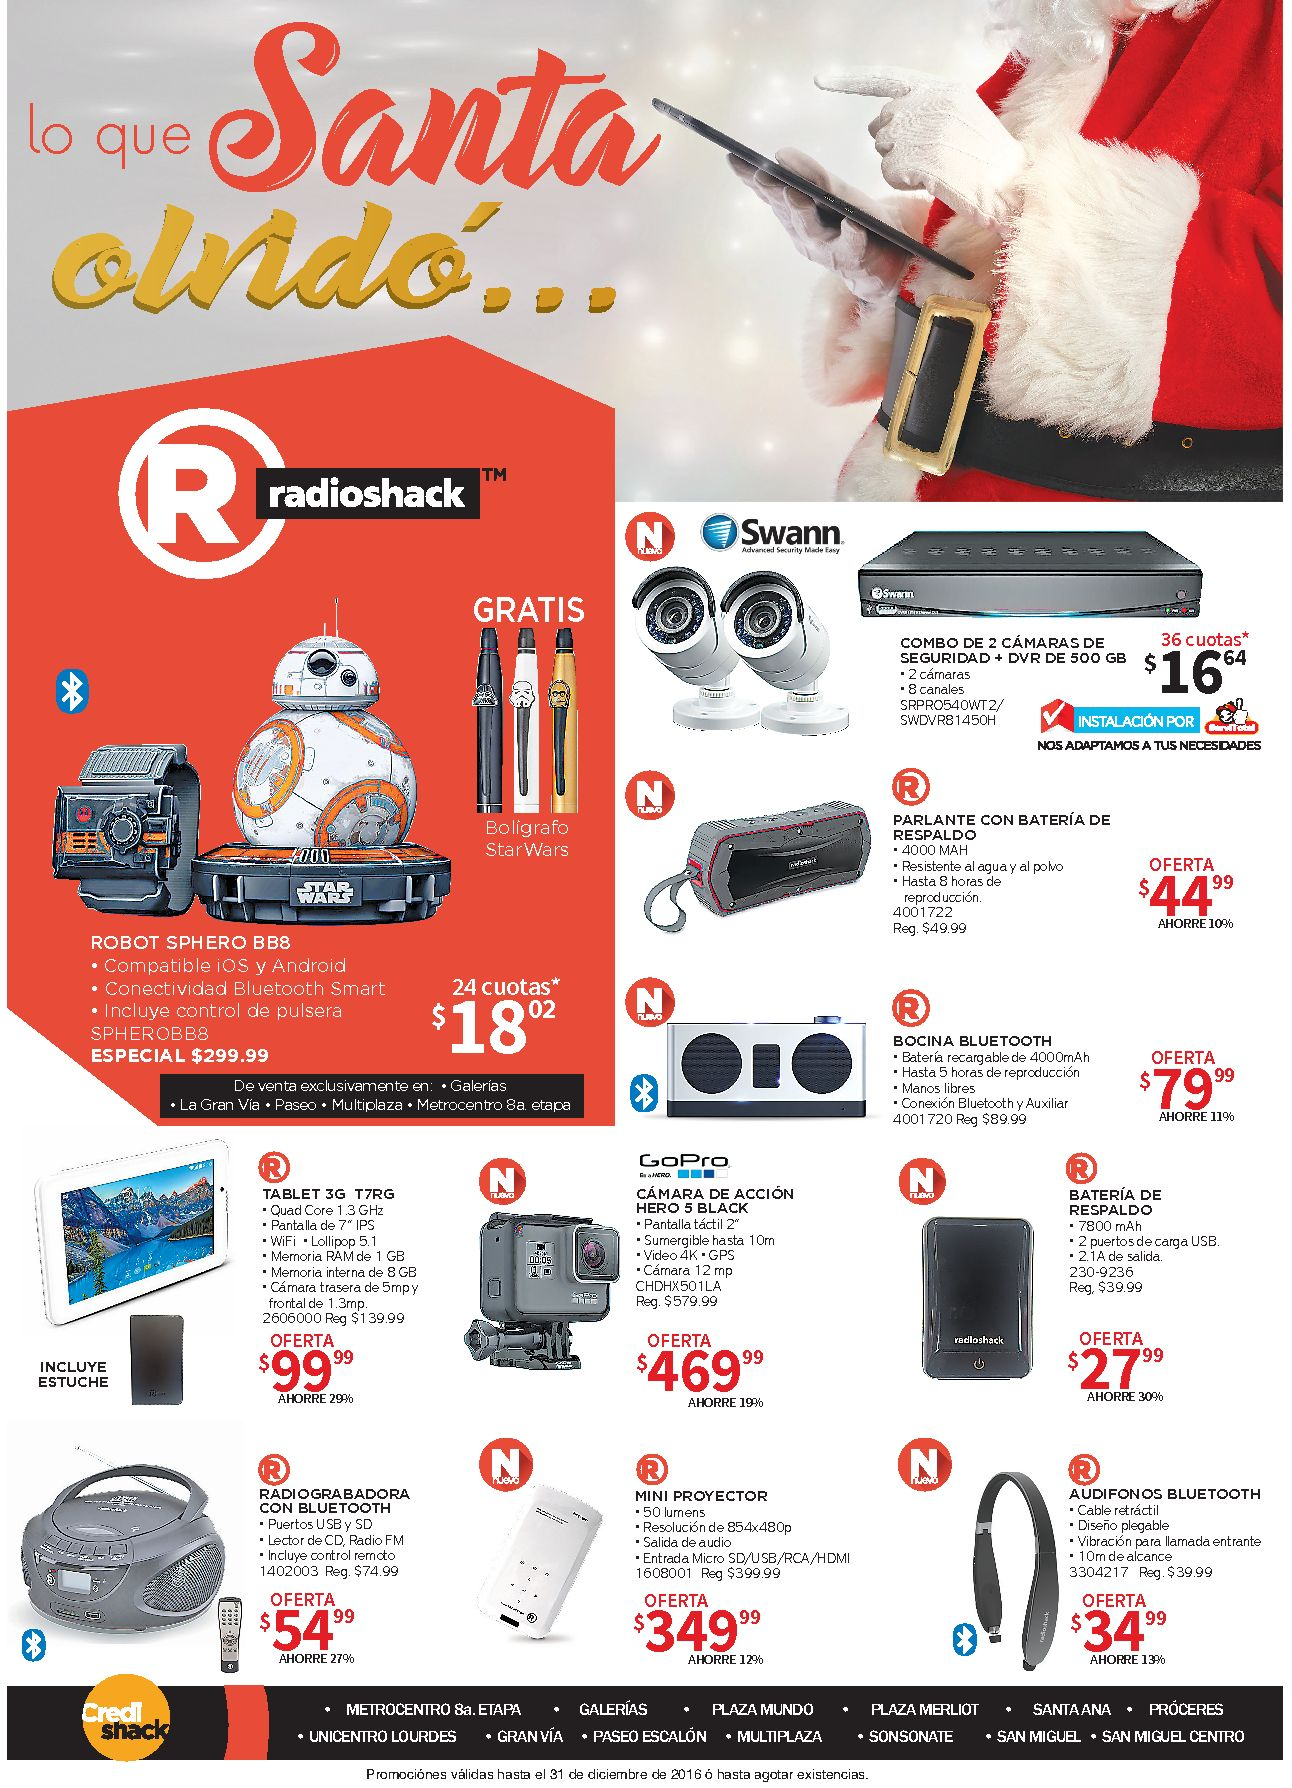 Radio Shack Home Security Cameras 28 Images